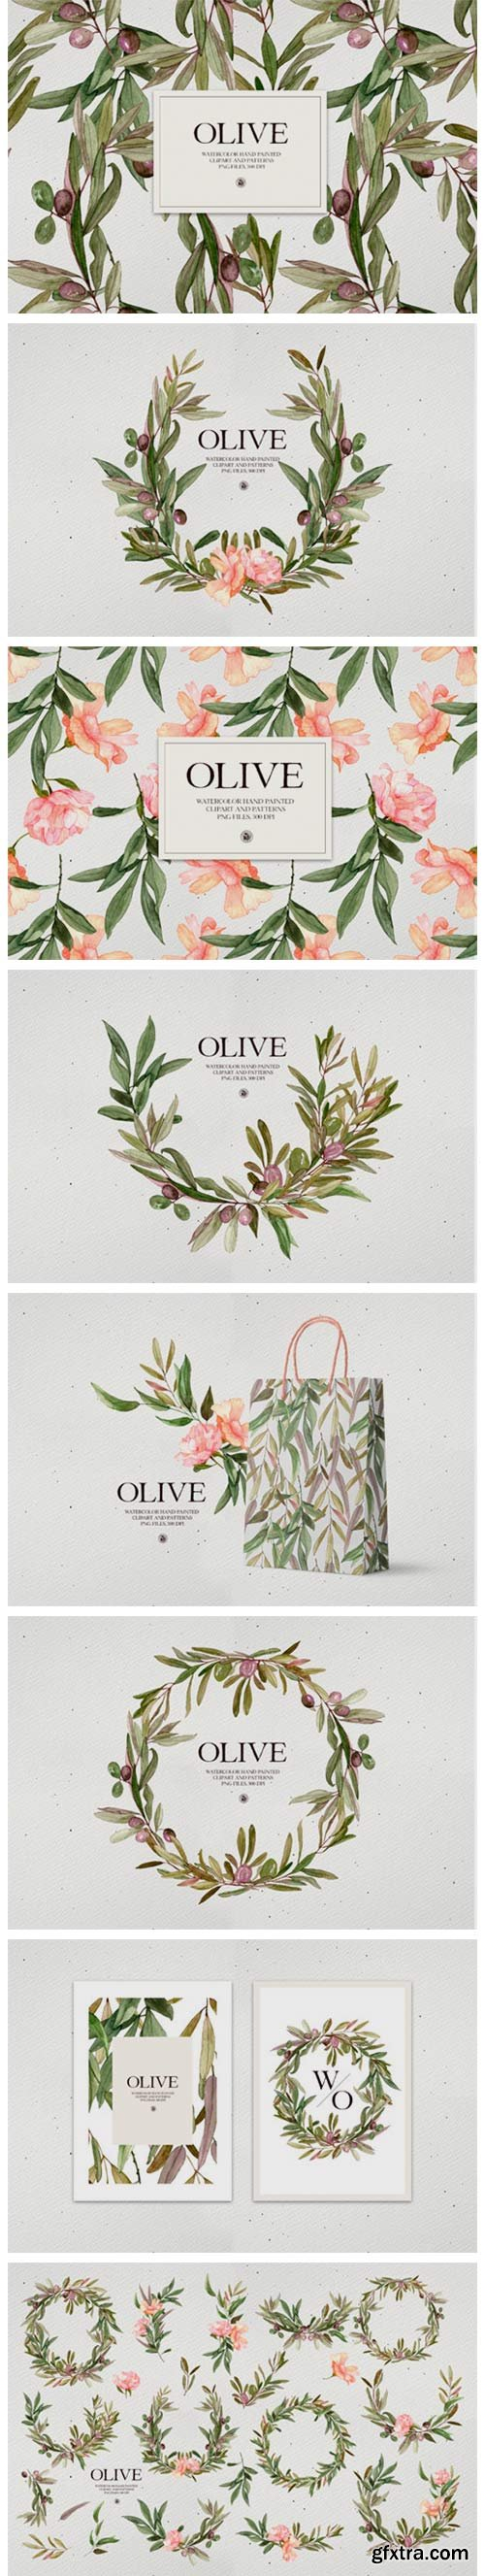 Watercolor Olive - Patterns and Frames 7707354